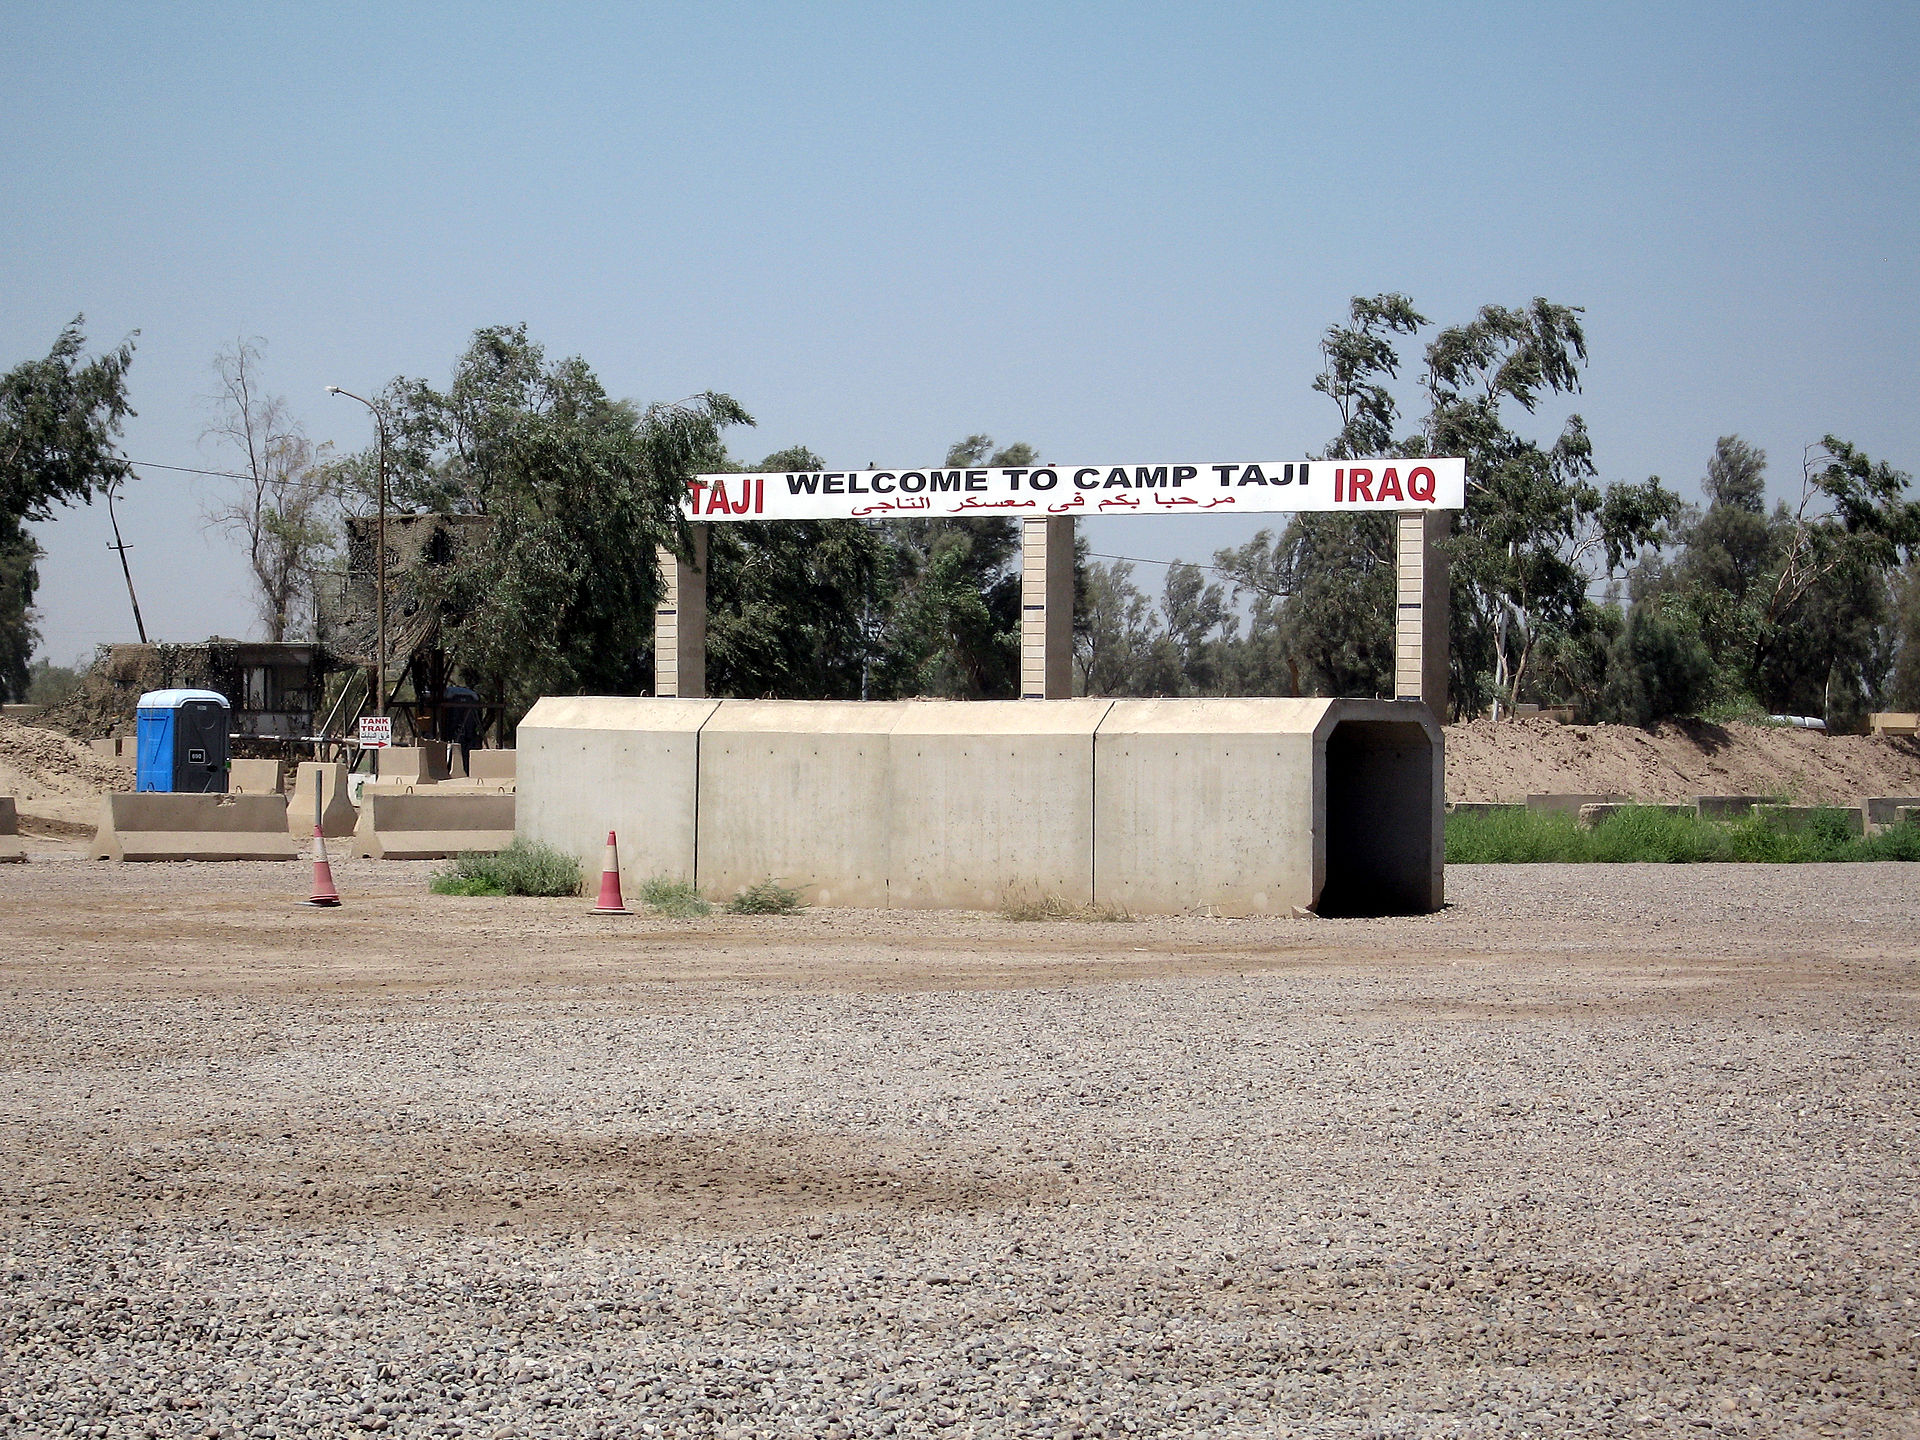 Where is camp taji in iraq